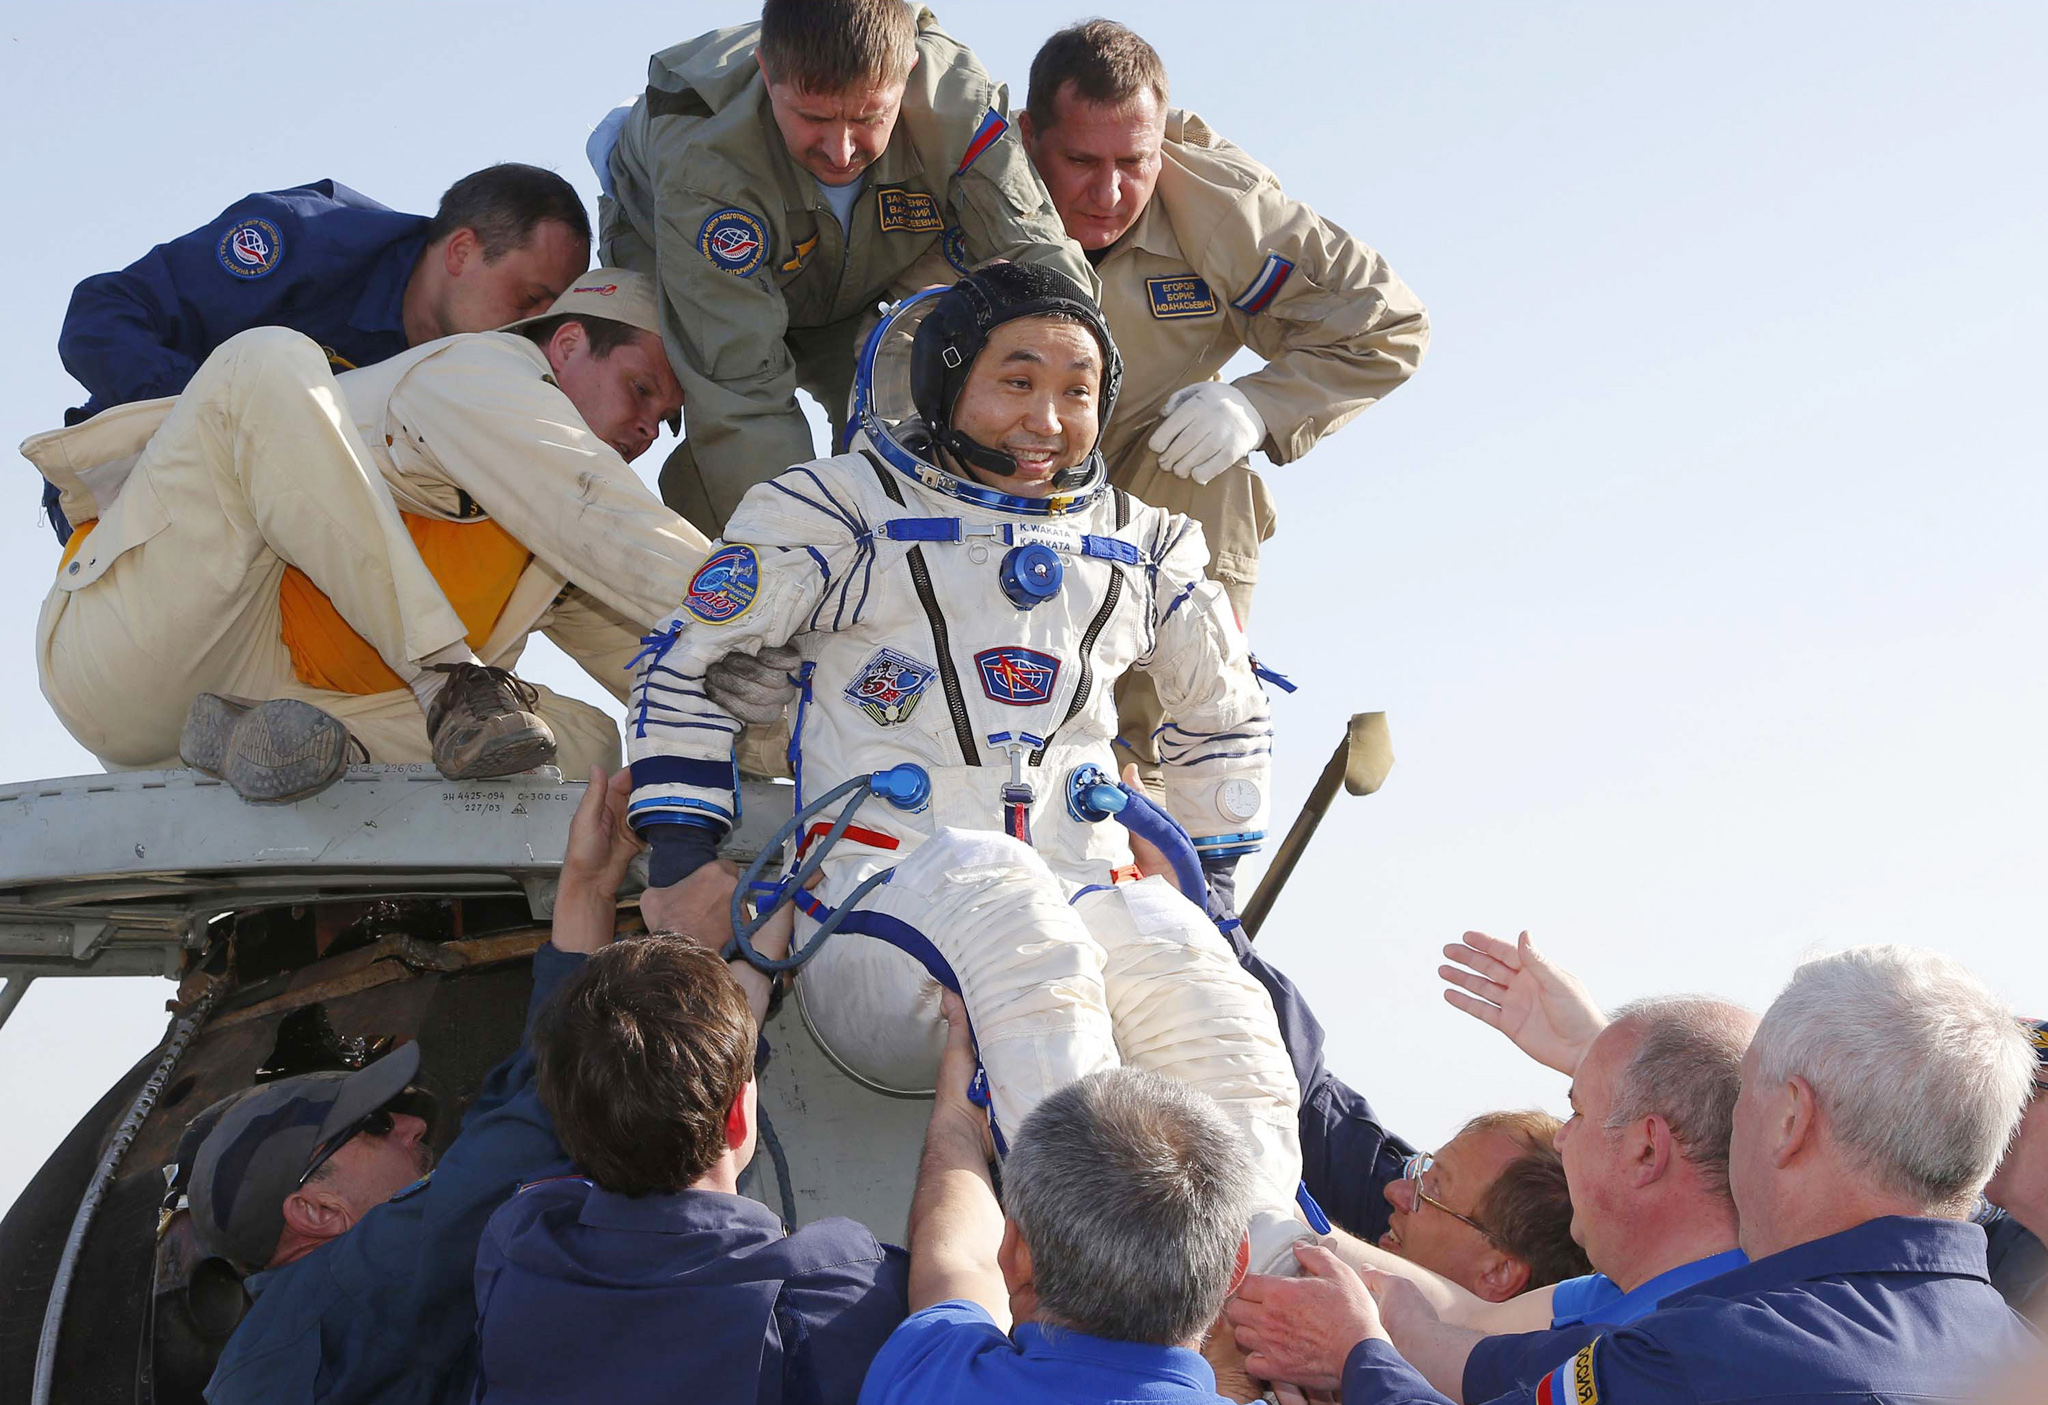 "REUTERS PICTURE HIGHLIGHT...ATTENTION EDITORS - REUTERS PICTURE HIGHLIGHT TRANSMITTED BY 0323 GMT ON MAY 14, 2014    SZH03  International Space Station (ISS) crew member Japanese astronaut Koichi Wakata is helped by ground search and rescue personnel after landing south-east of the town of Dzhezkazgan in central Kazakhstan. REUTERS/Dmitry Lovetsky/Pool      REUTERS NEWS PICTURES HAS NOW MADE IT EASIER TO FIND THE BEST PHOTOS FROM THE MOST IMPORTANT STORIES AND TOP STANDALONES EACH DAY. Search for ""TPX"" in the IPTC Supplemental Category field or ""IMAGES OF THE DAY"" in the Caption field and you will find a selection of 80-100 of our daily Top Pictures."